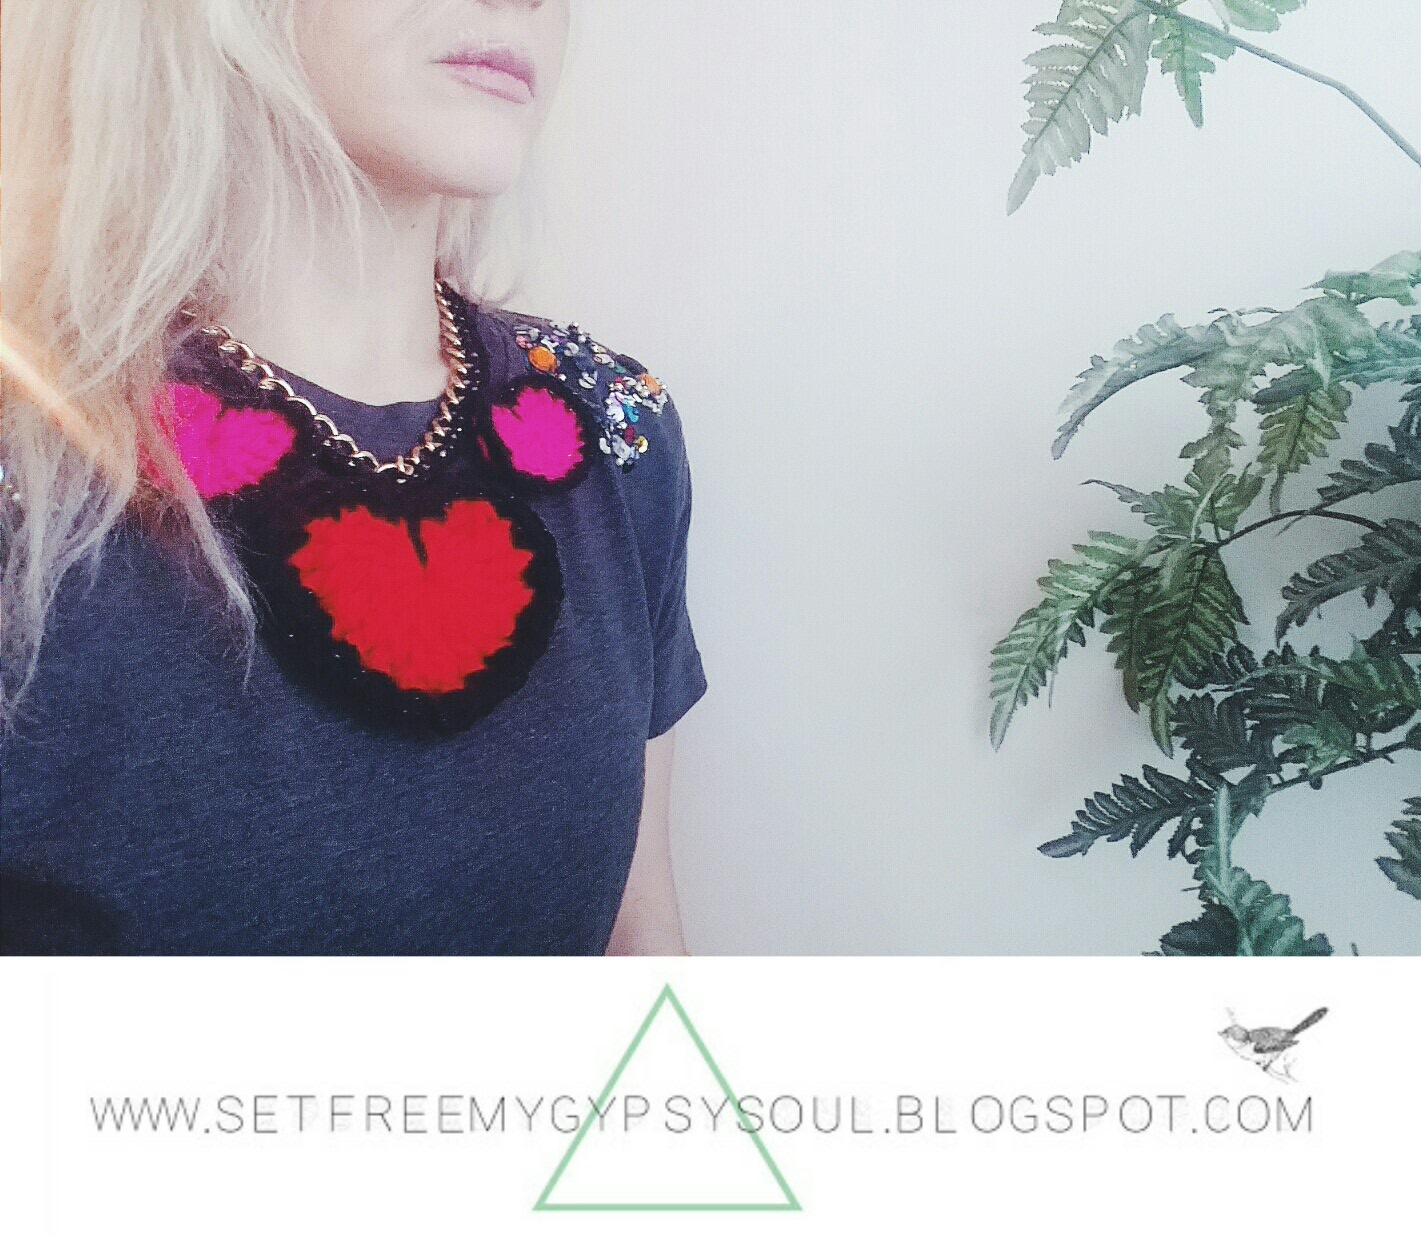 Free Crochet Pattern   Make This Cute Crochet DIY Statement Necklace With Love Hearts And Chain Detail